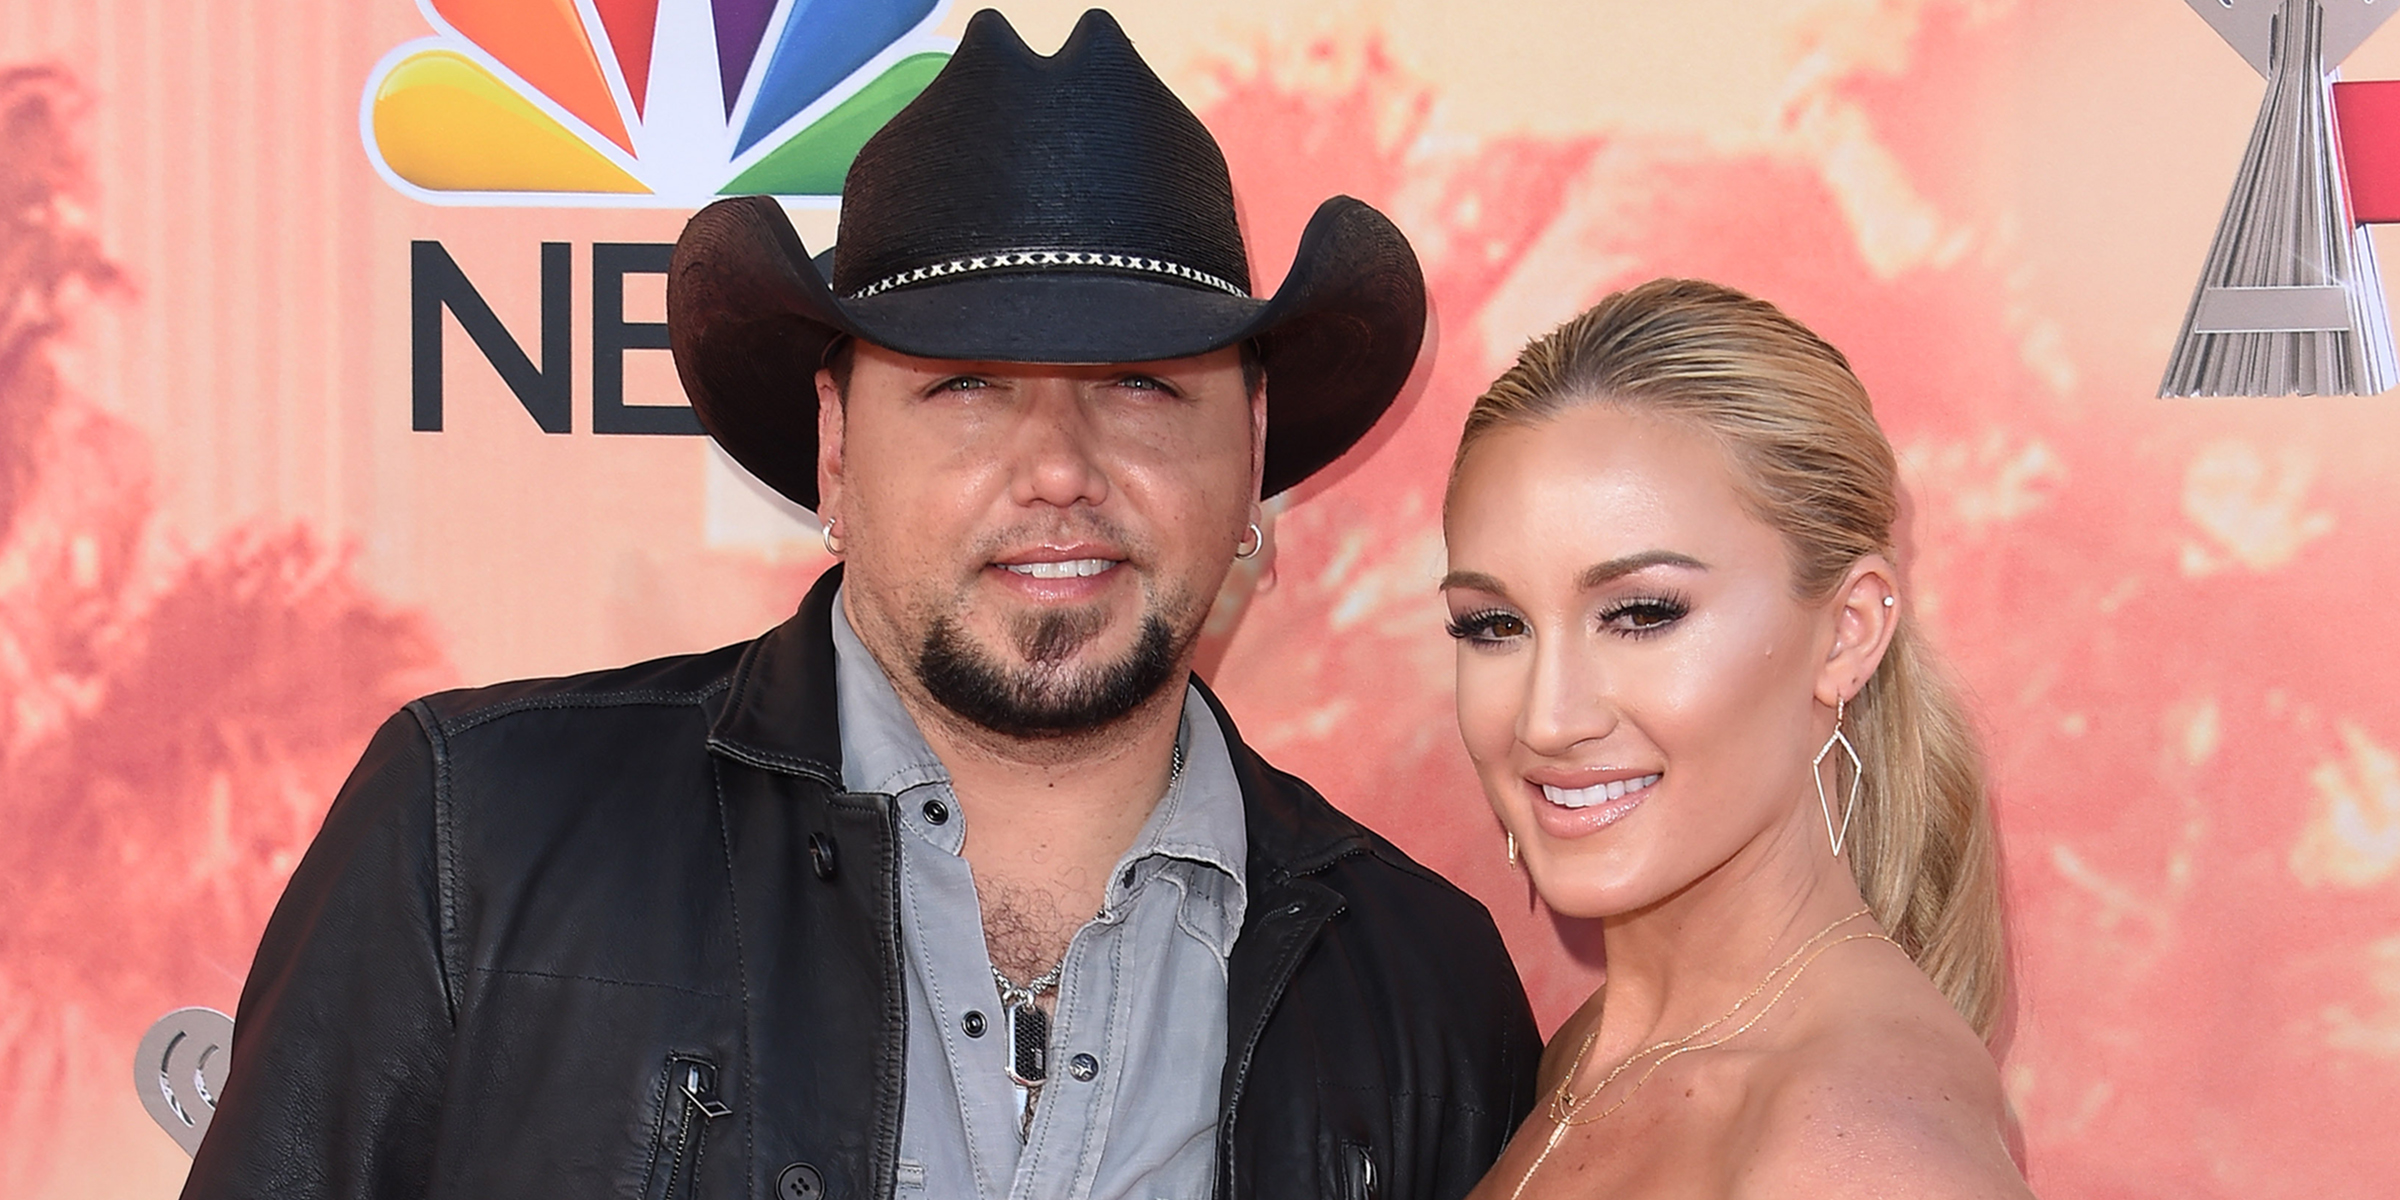 e51e5dfb30b3a1 Jason Aldean and wife Brittany welcome a new baby daughter